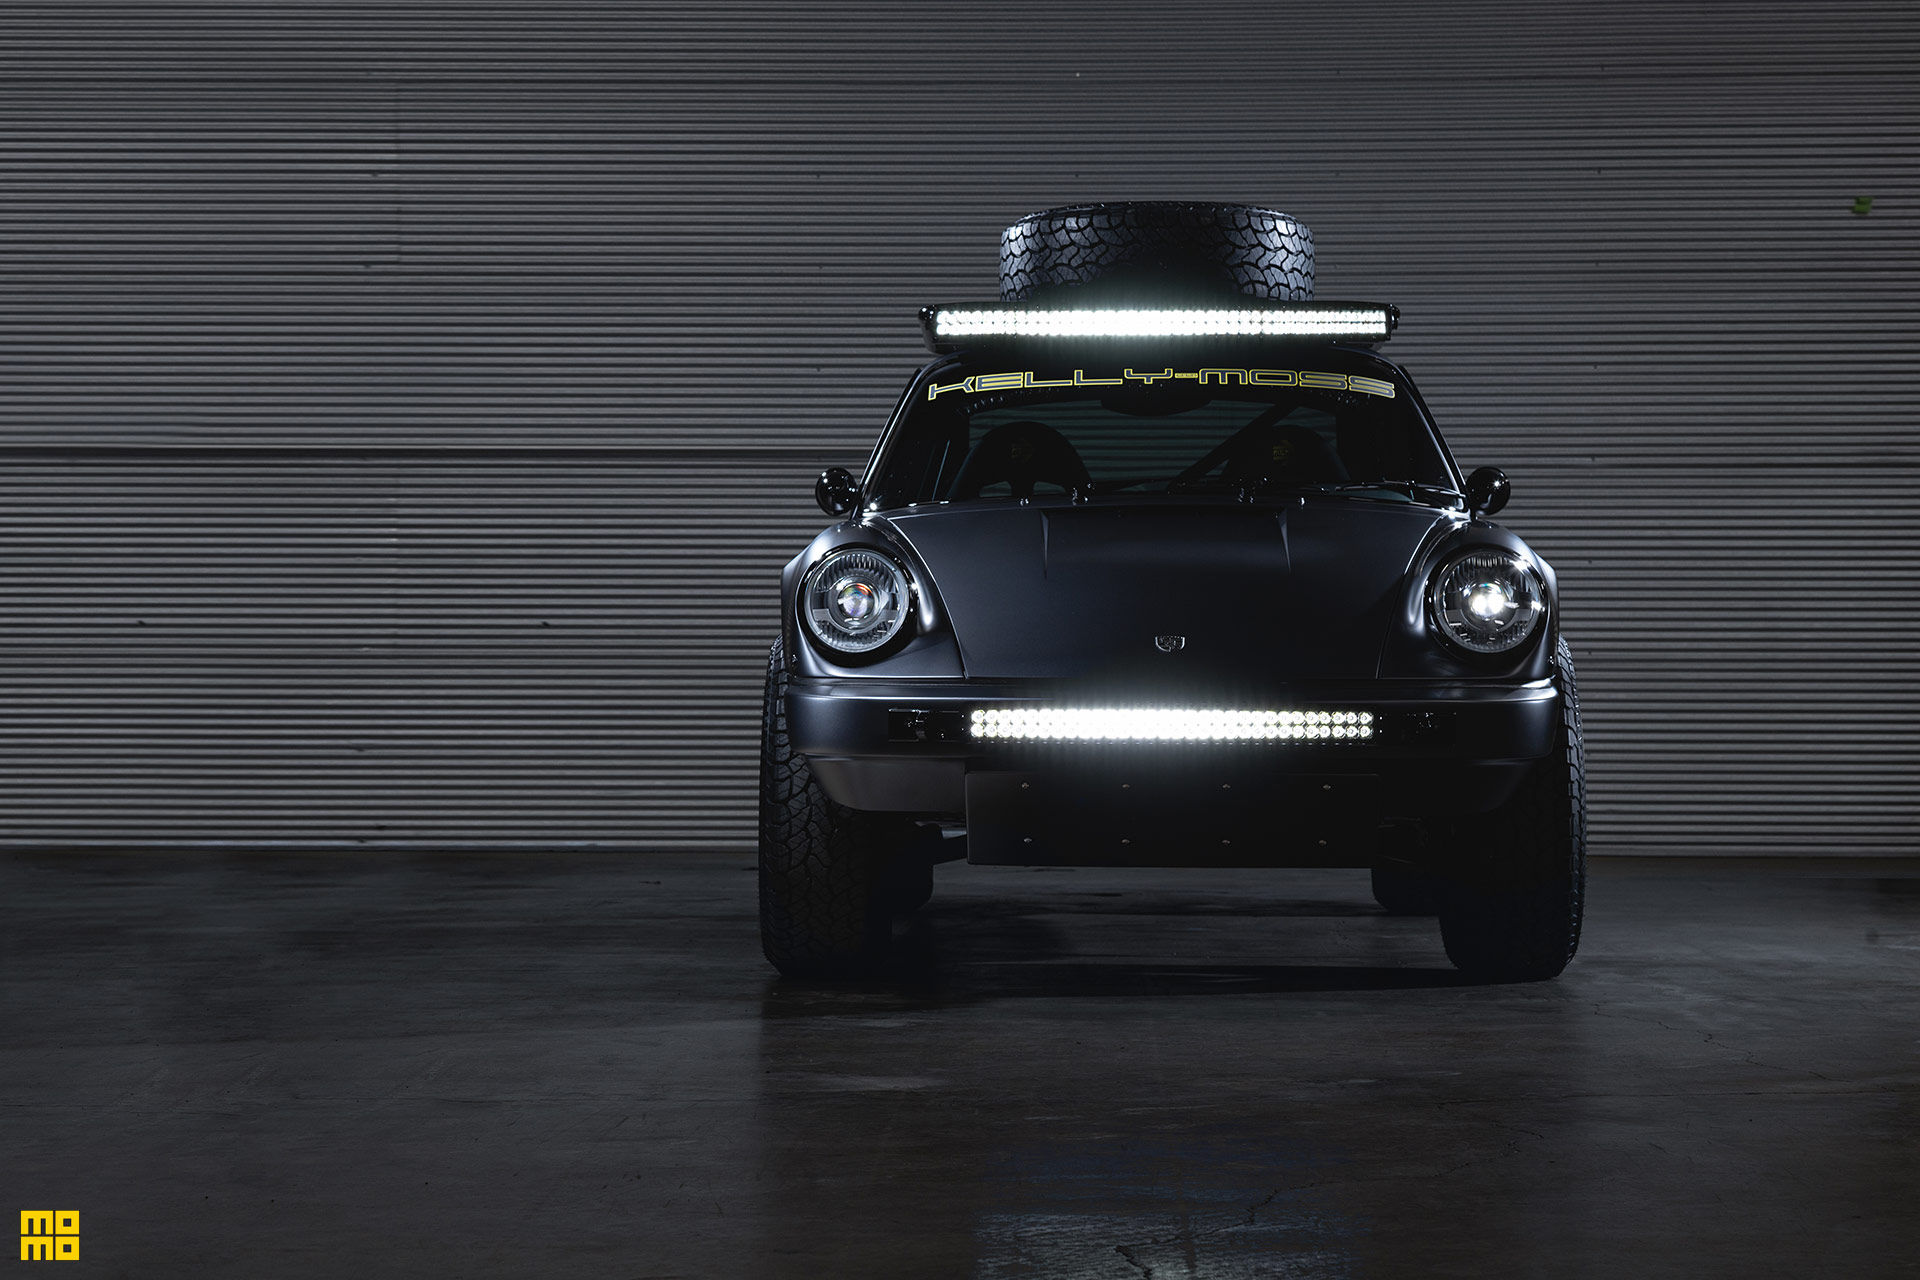 Kelly-Moss-Road-and-Race-Porsche-911-Willy-Safari-5